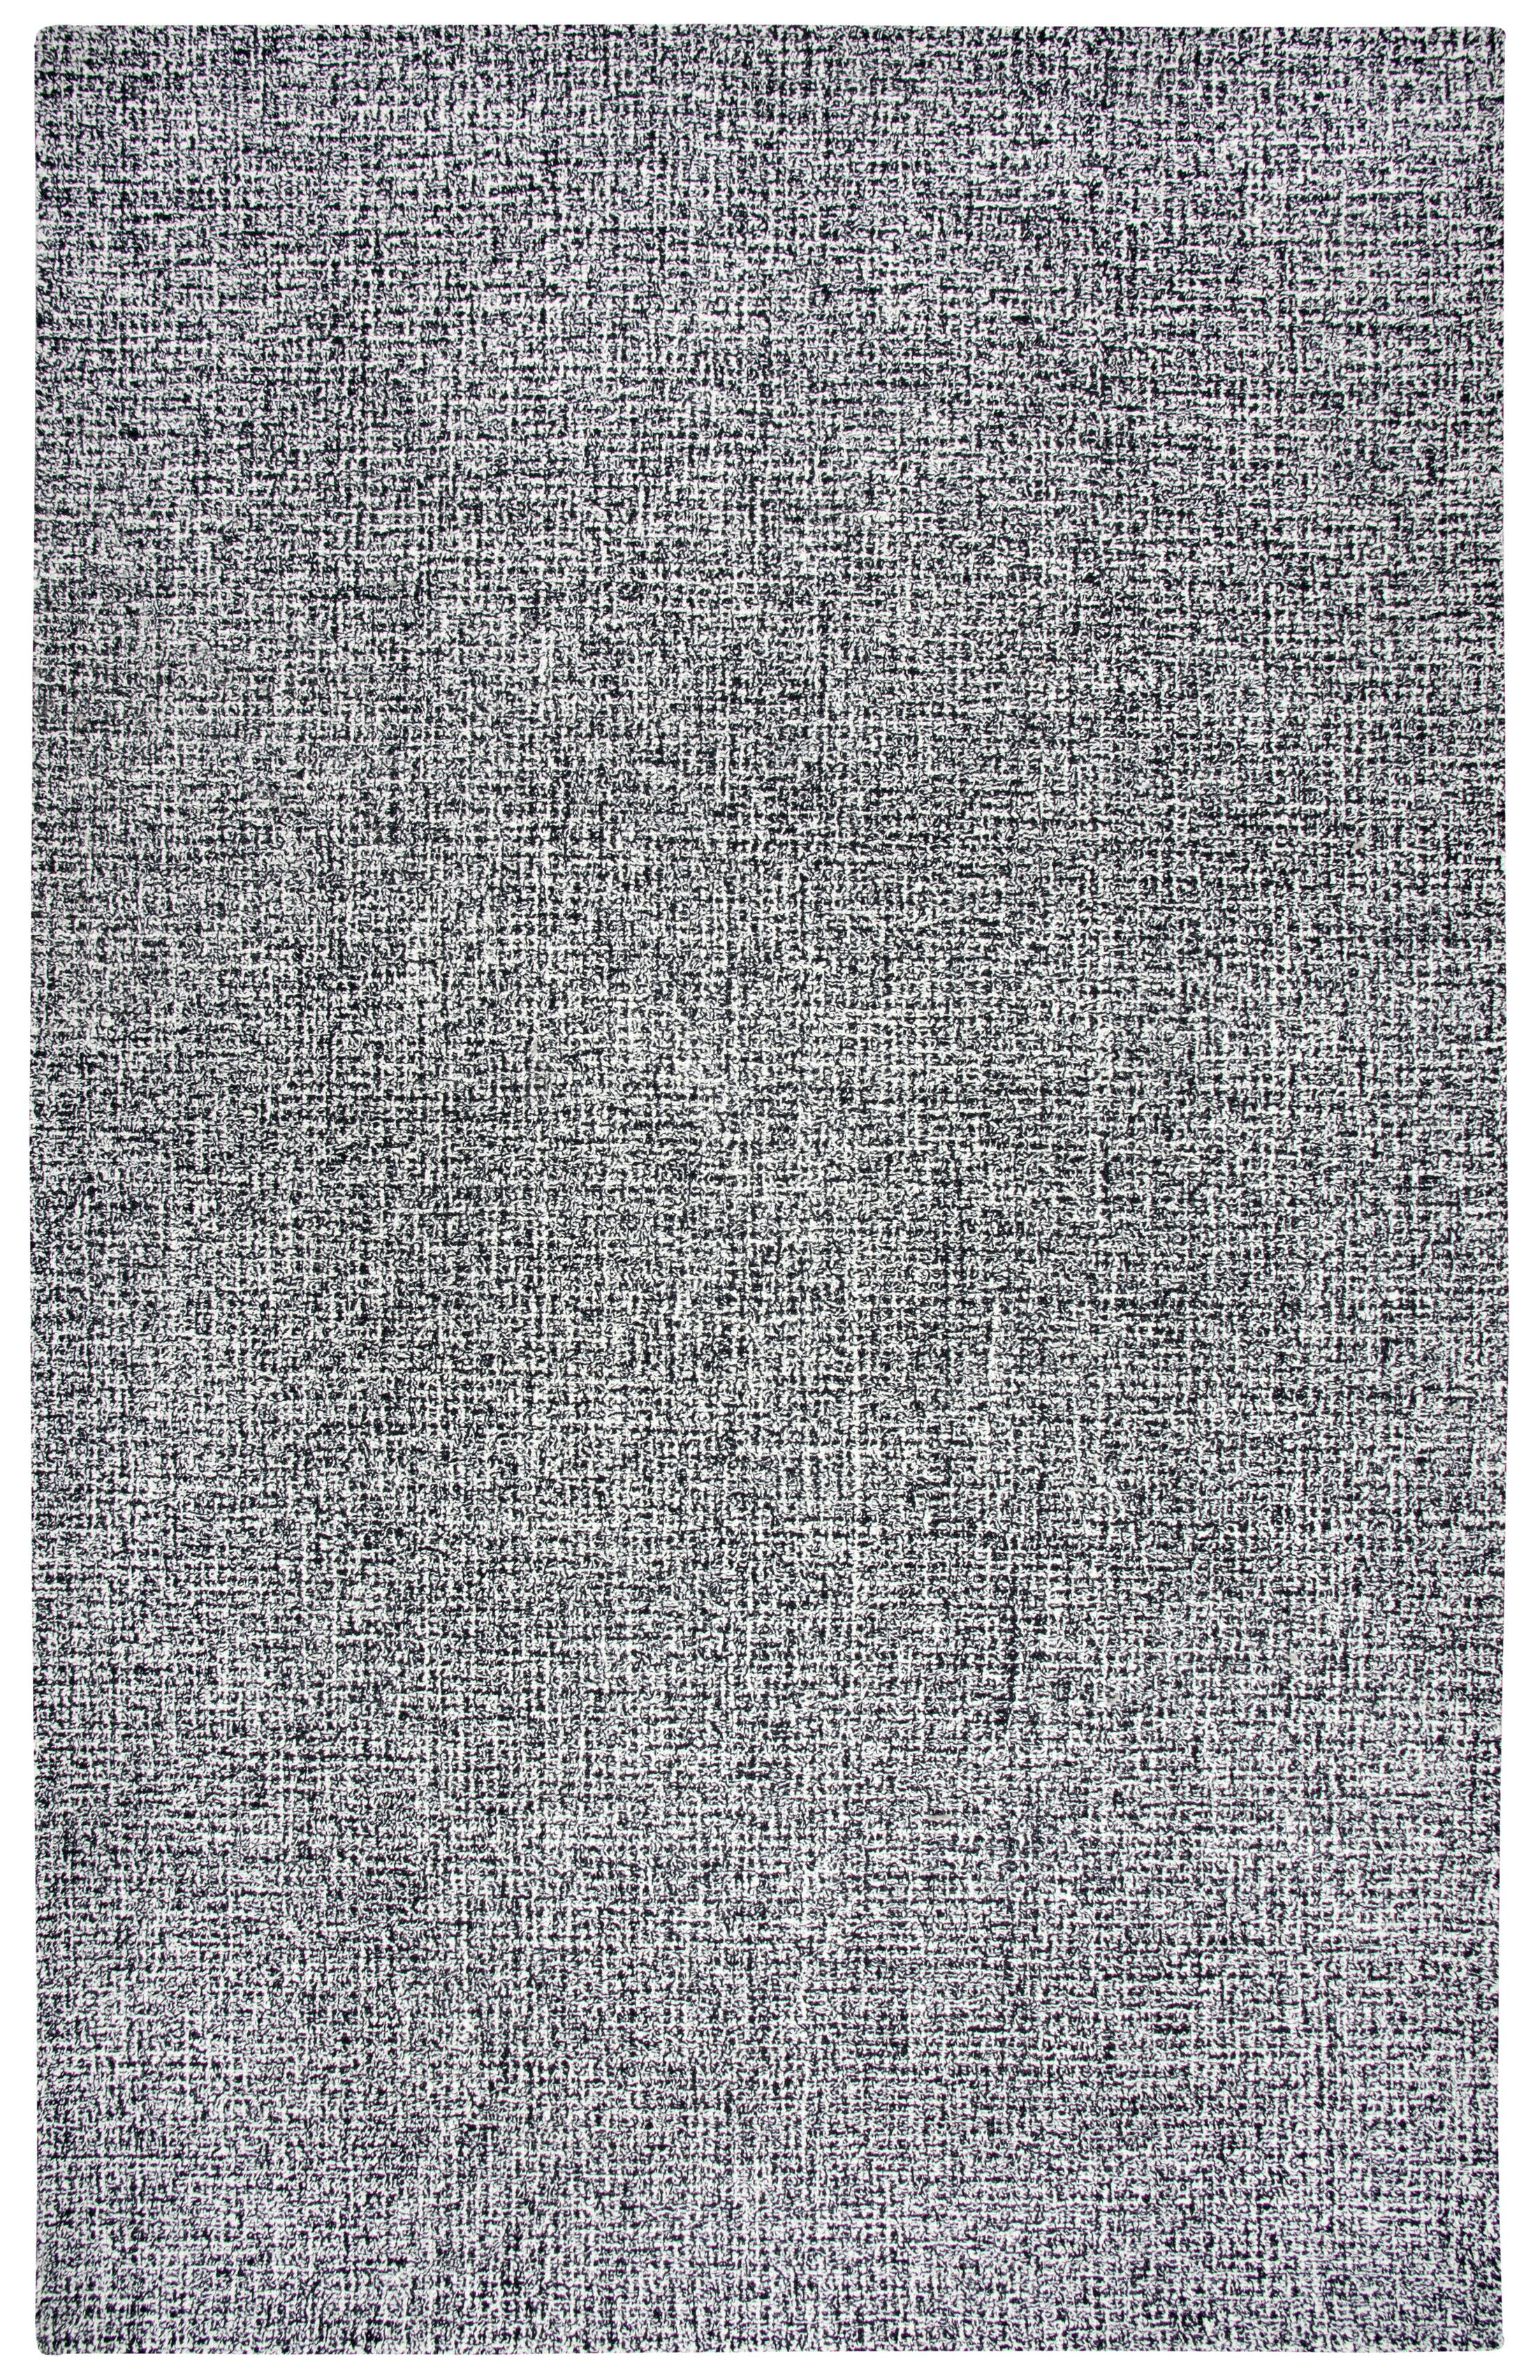 Marsh Hand-Tufted Wool Black/White Area Rug Rug Size: Rectangle 5' x 8'